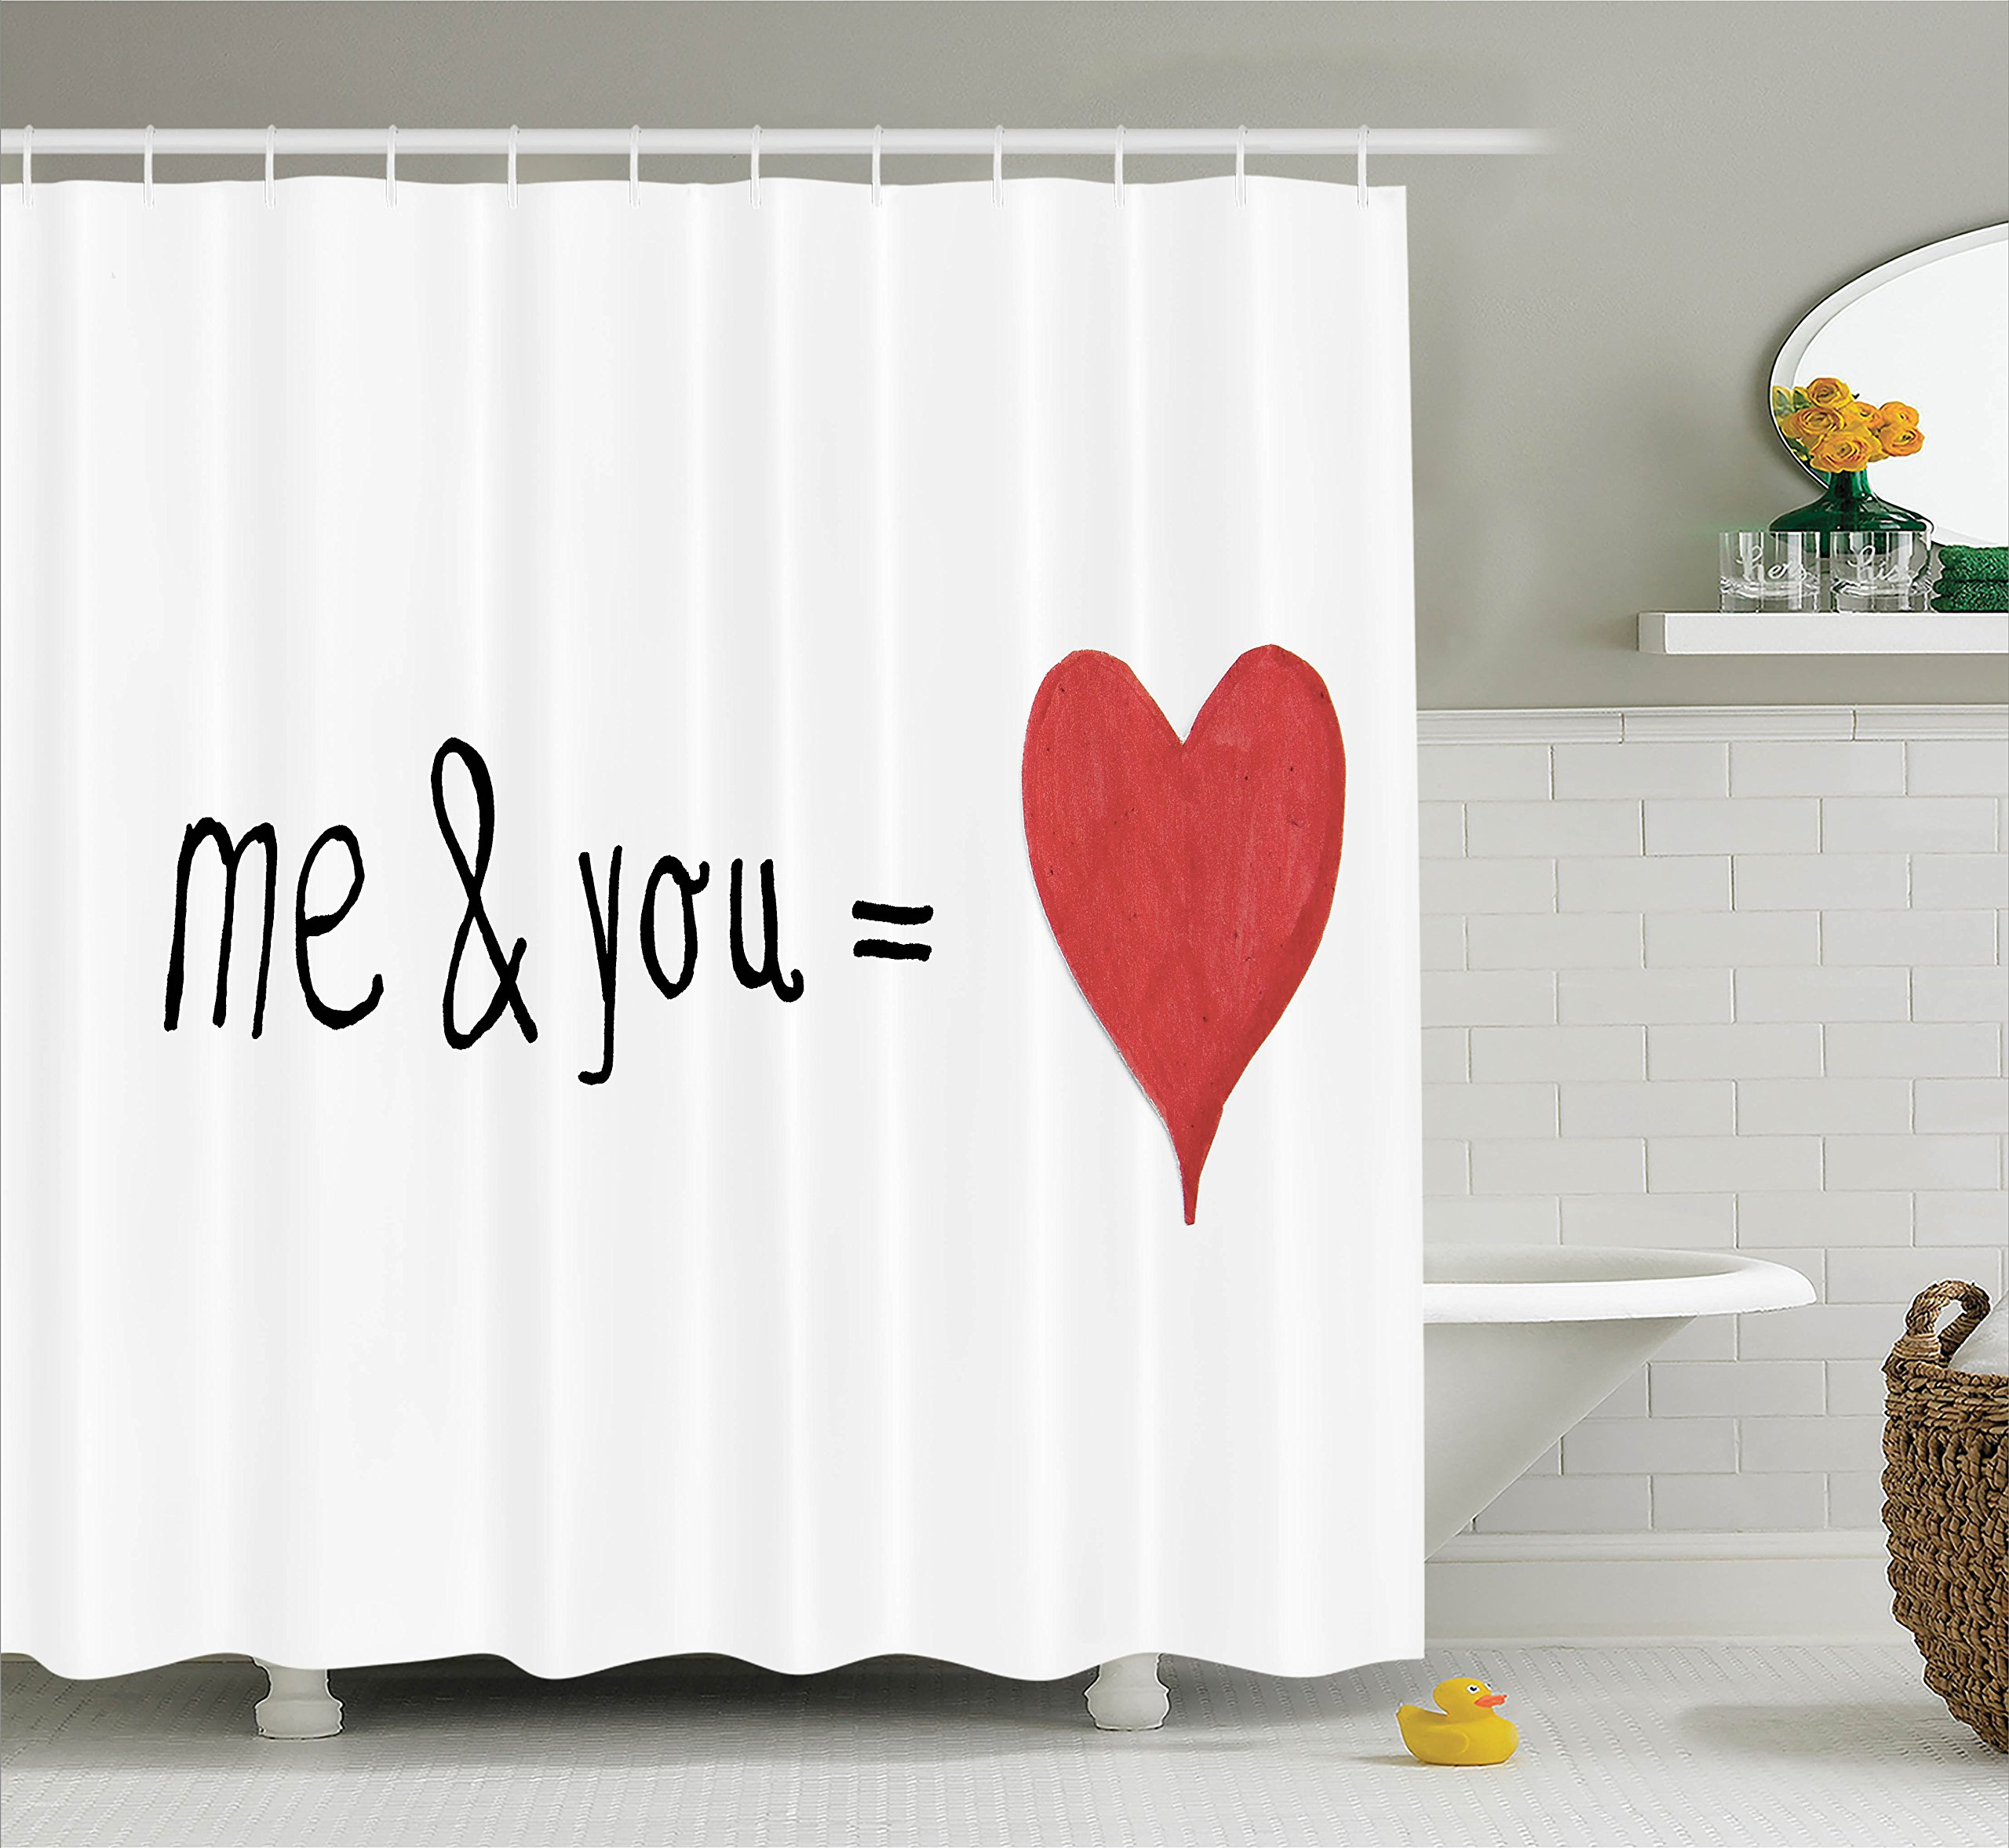 Ambesonne Love Decor Shower Curtain Set, Me and You Equal to Us Everything My World Relationship Eros Valentines Print, Bathroom Accessories, 69W X 70L Inches, Red Black White